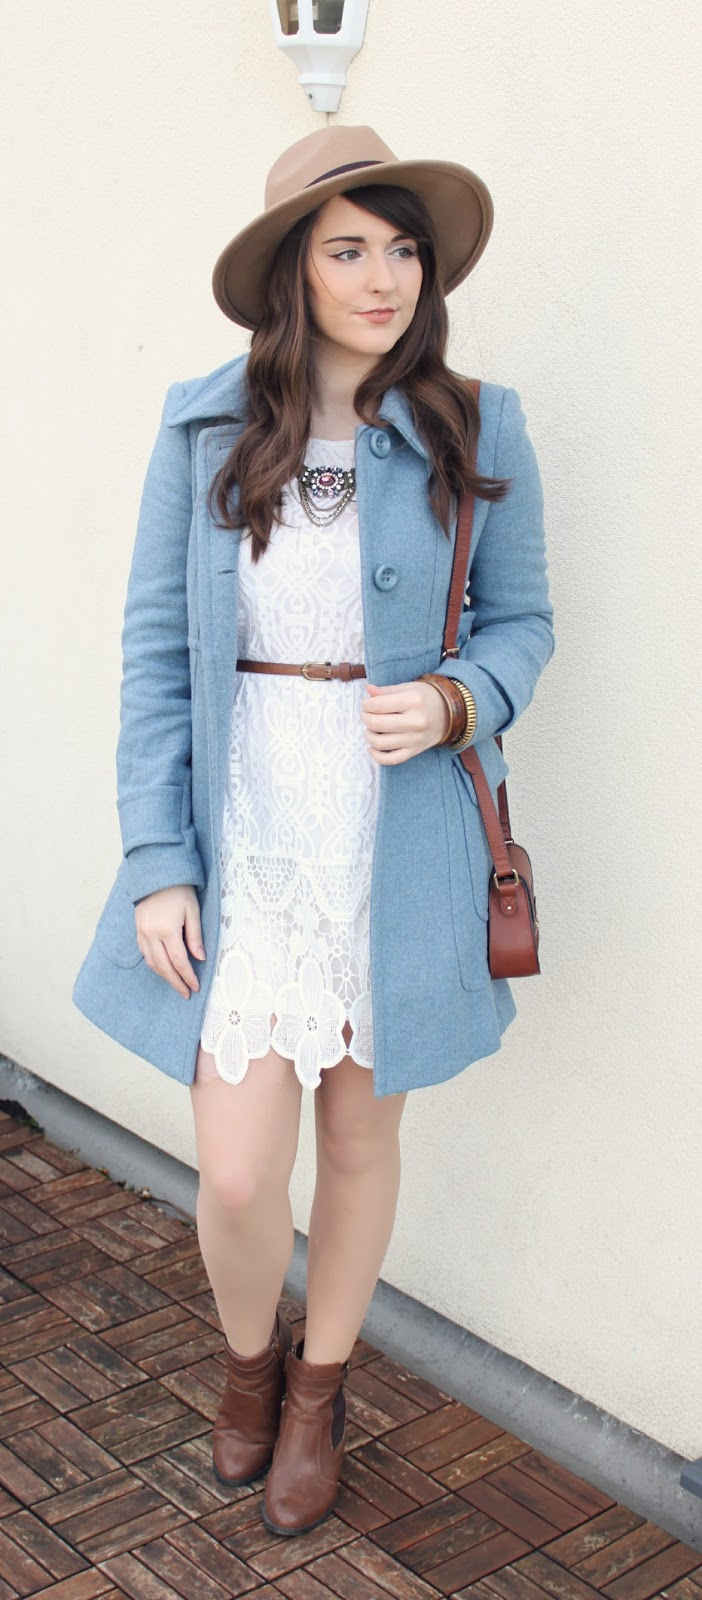 boho-style-white-lace-dress-from-boohoo-and-blue-coat